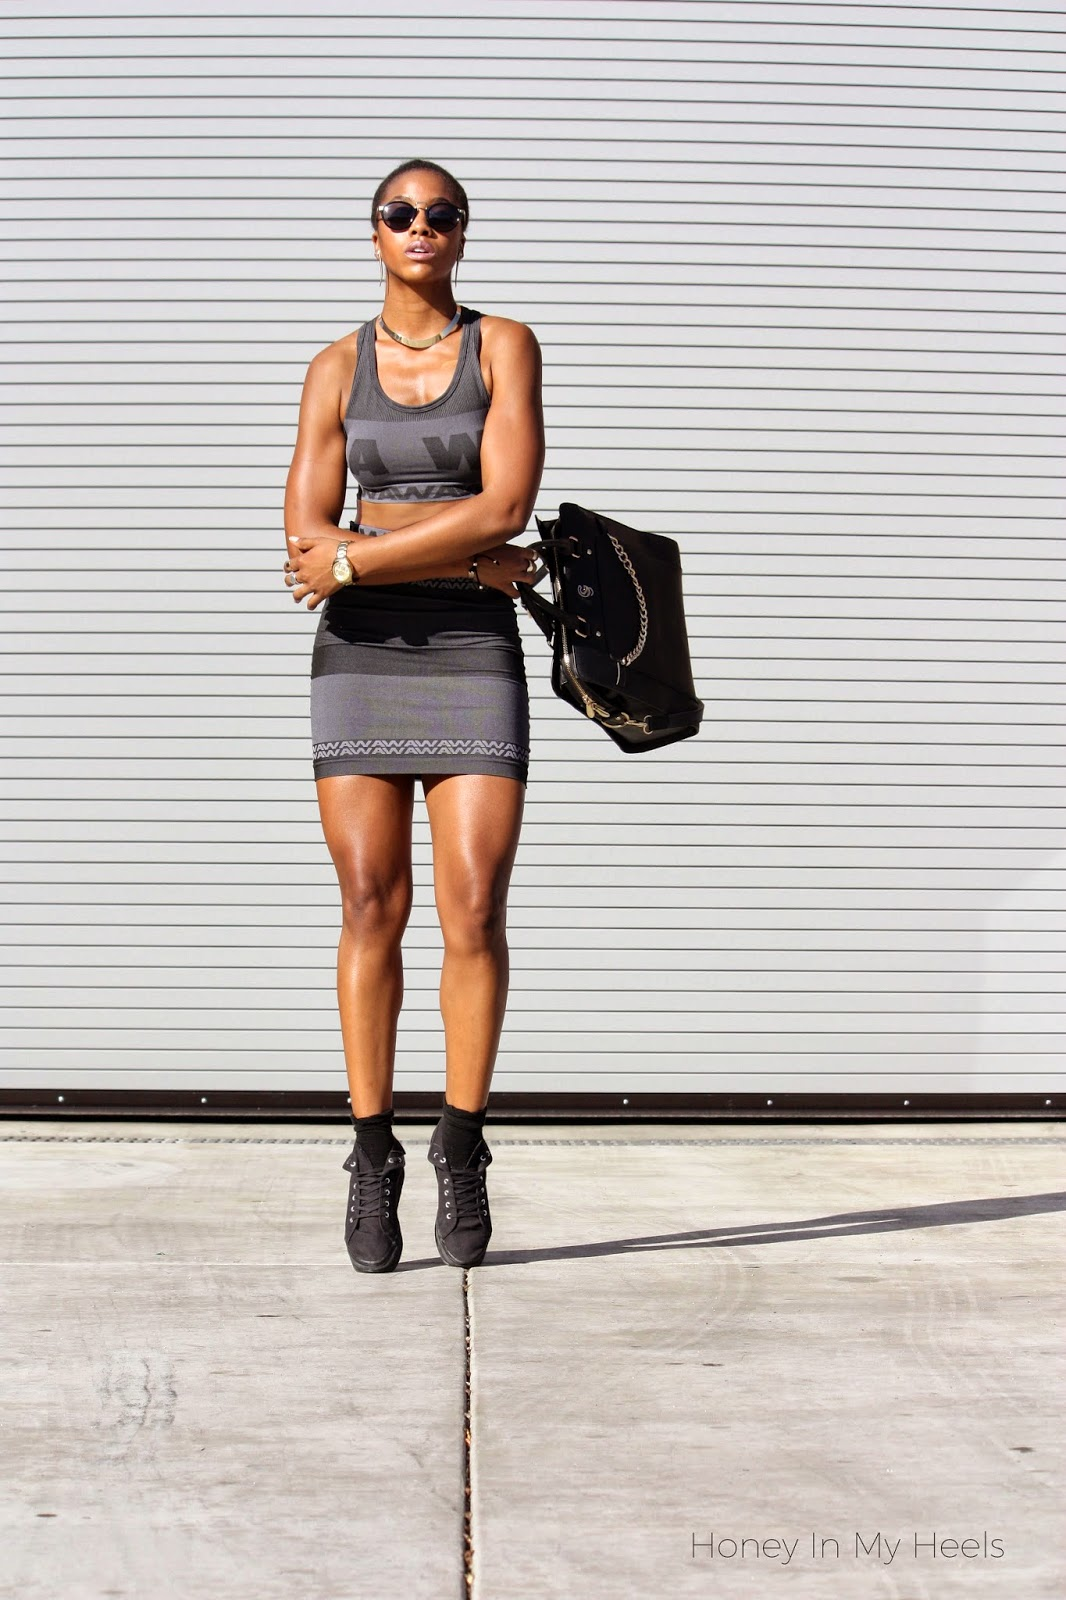 Wearing Alexander Wang x H&M sports bra and pencil skirt with Gregory Sylvia purse